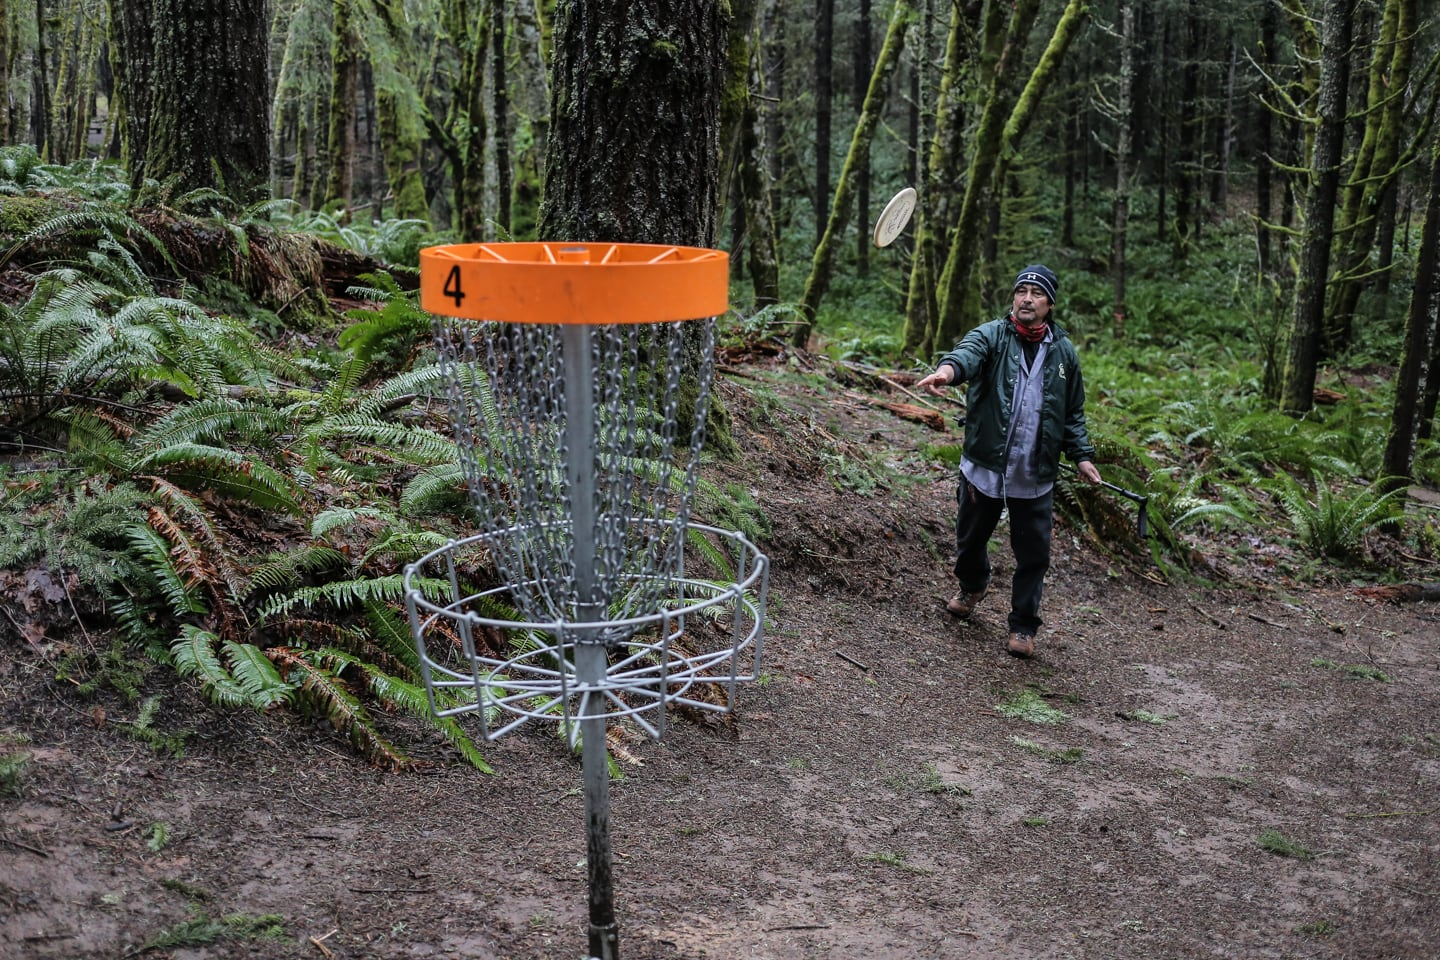 man playing disc golf in the Pacific Northwest woods